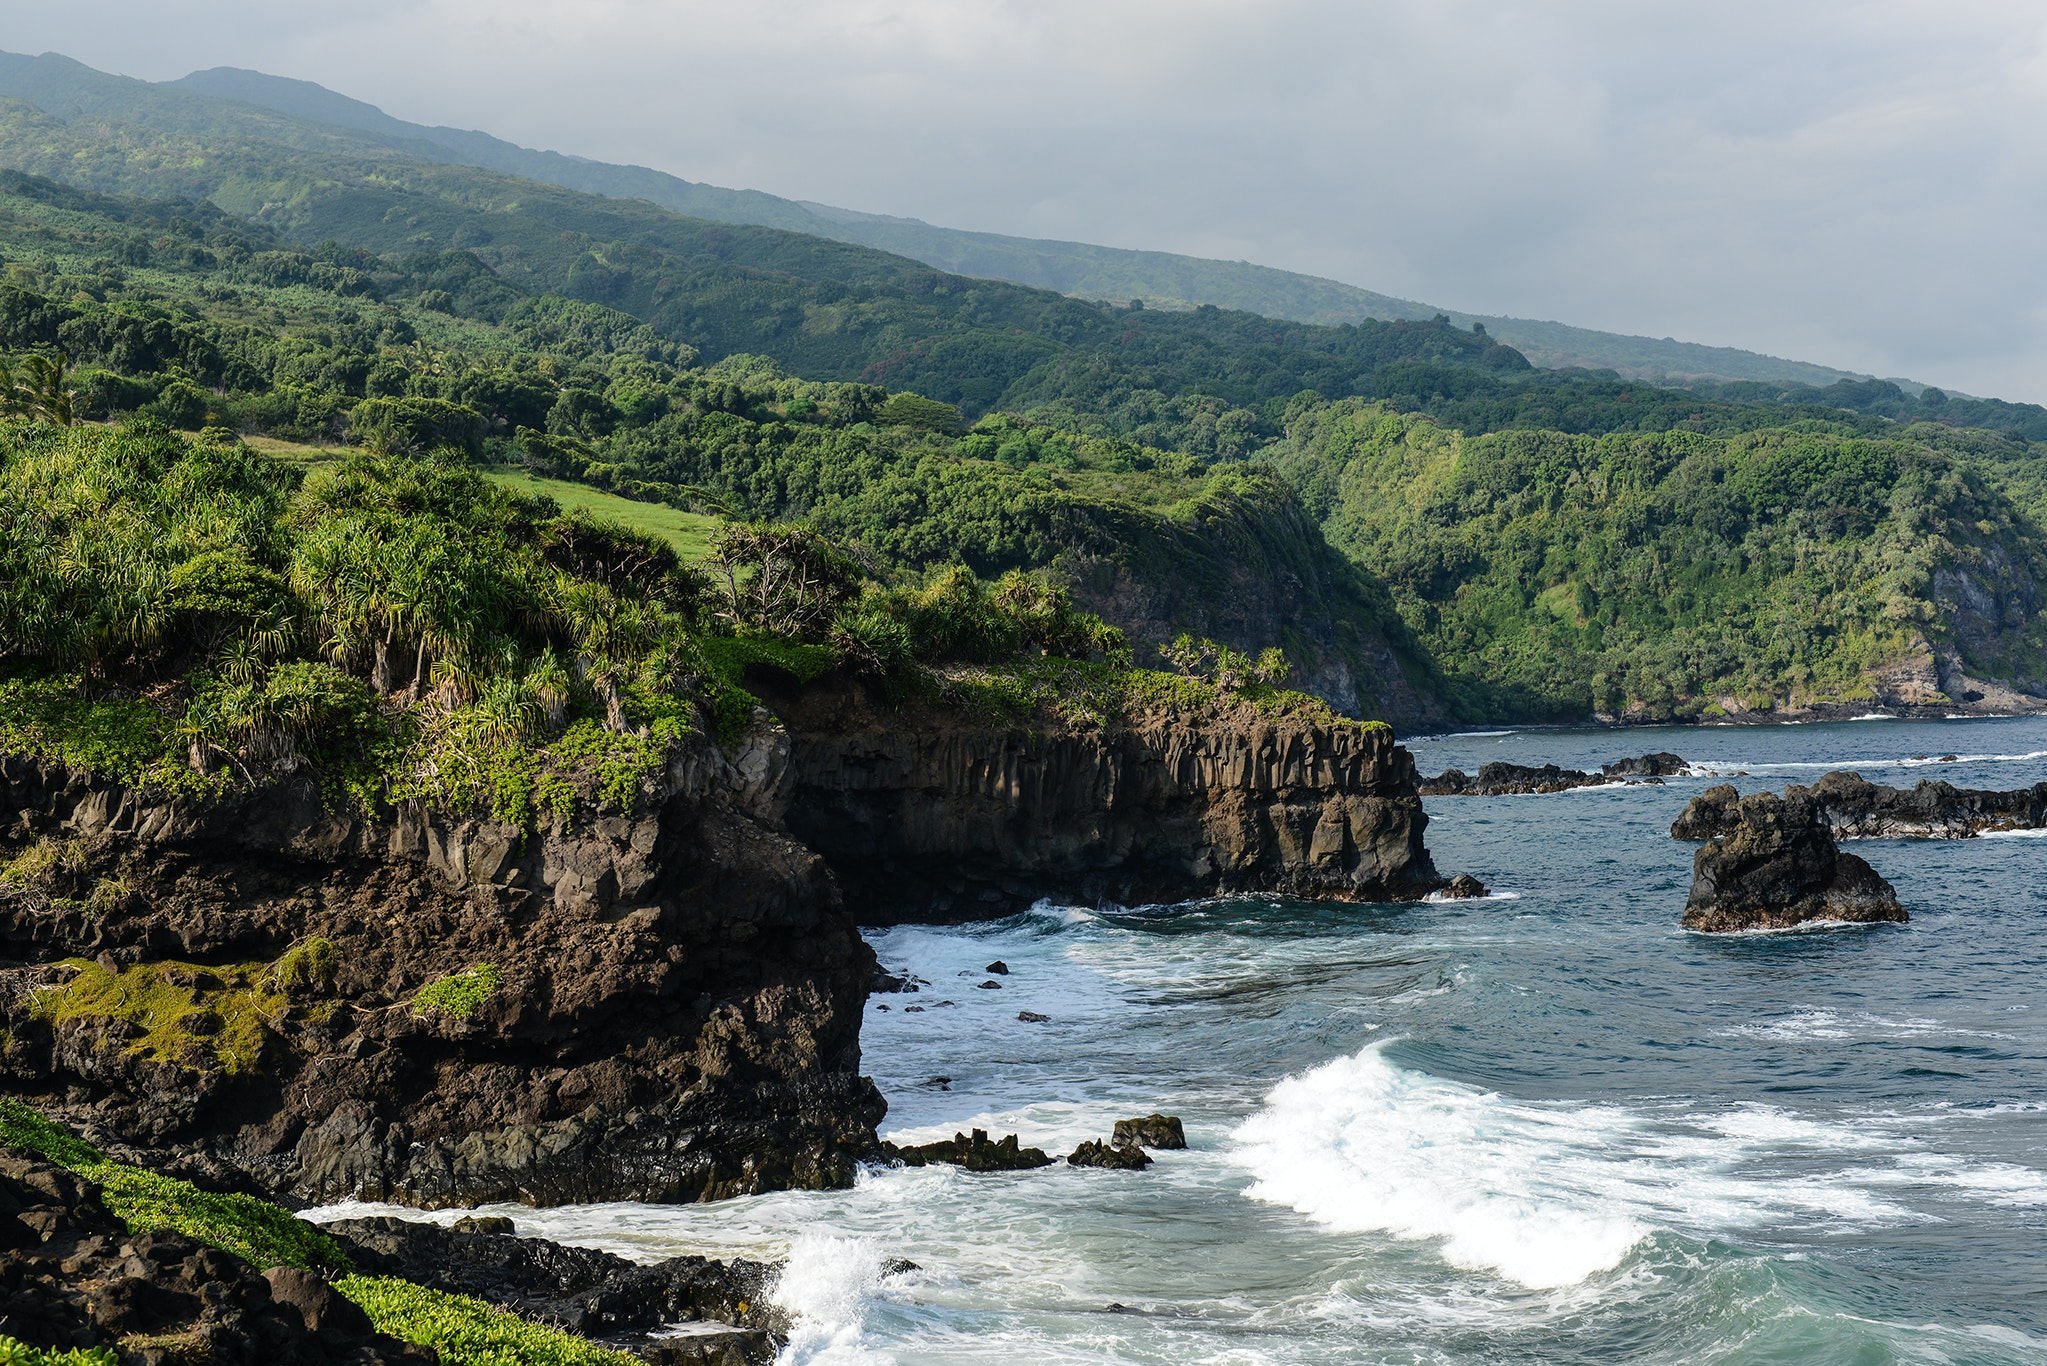 You will want a convertible to drive the famed Road to Hana.